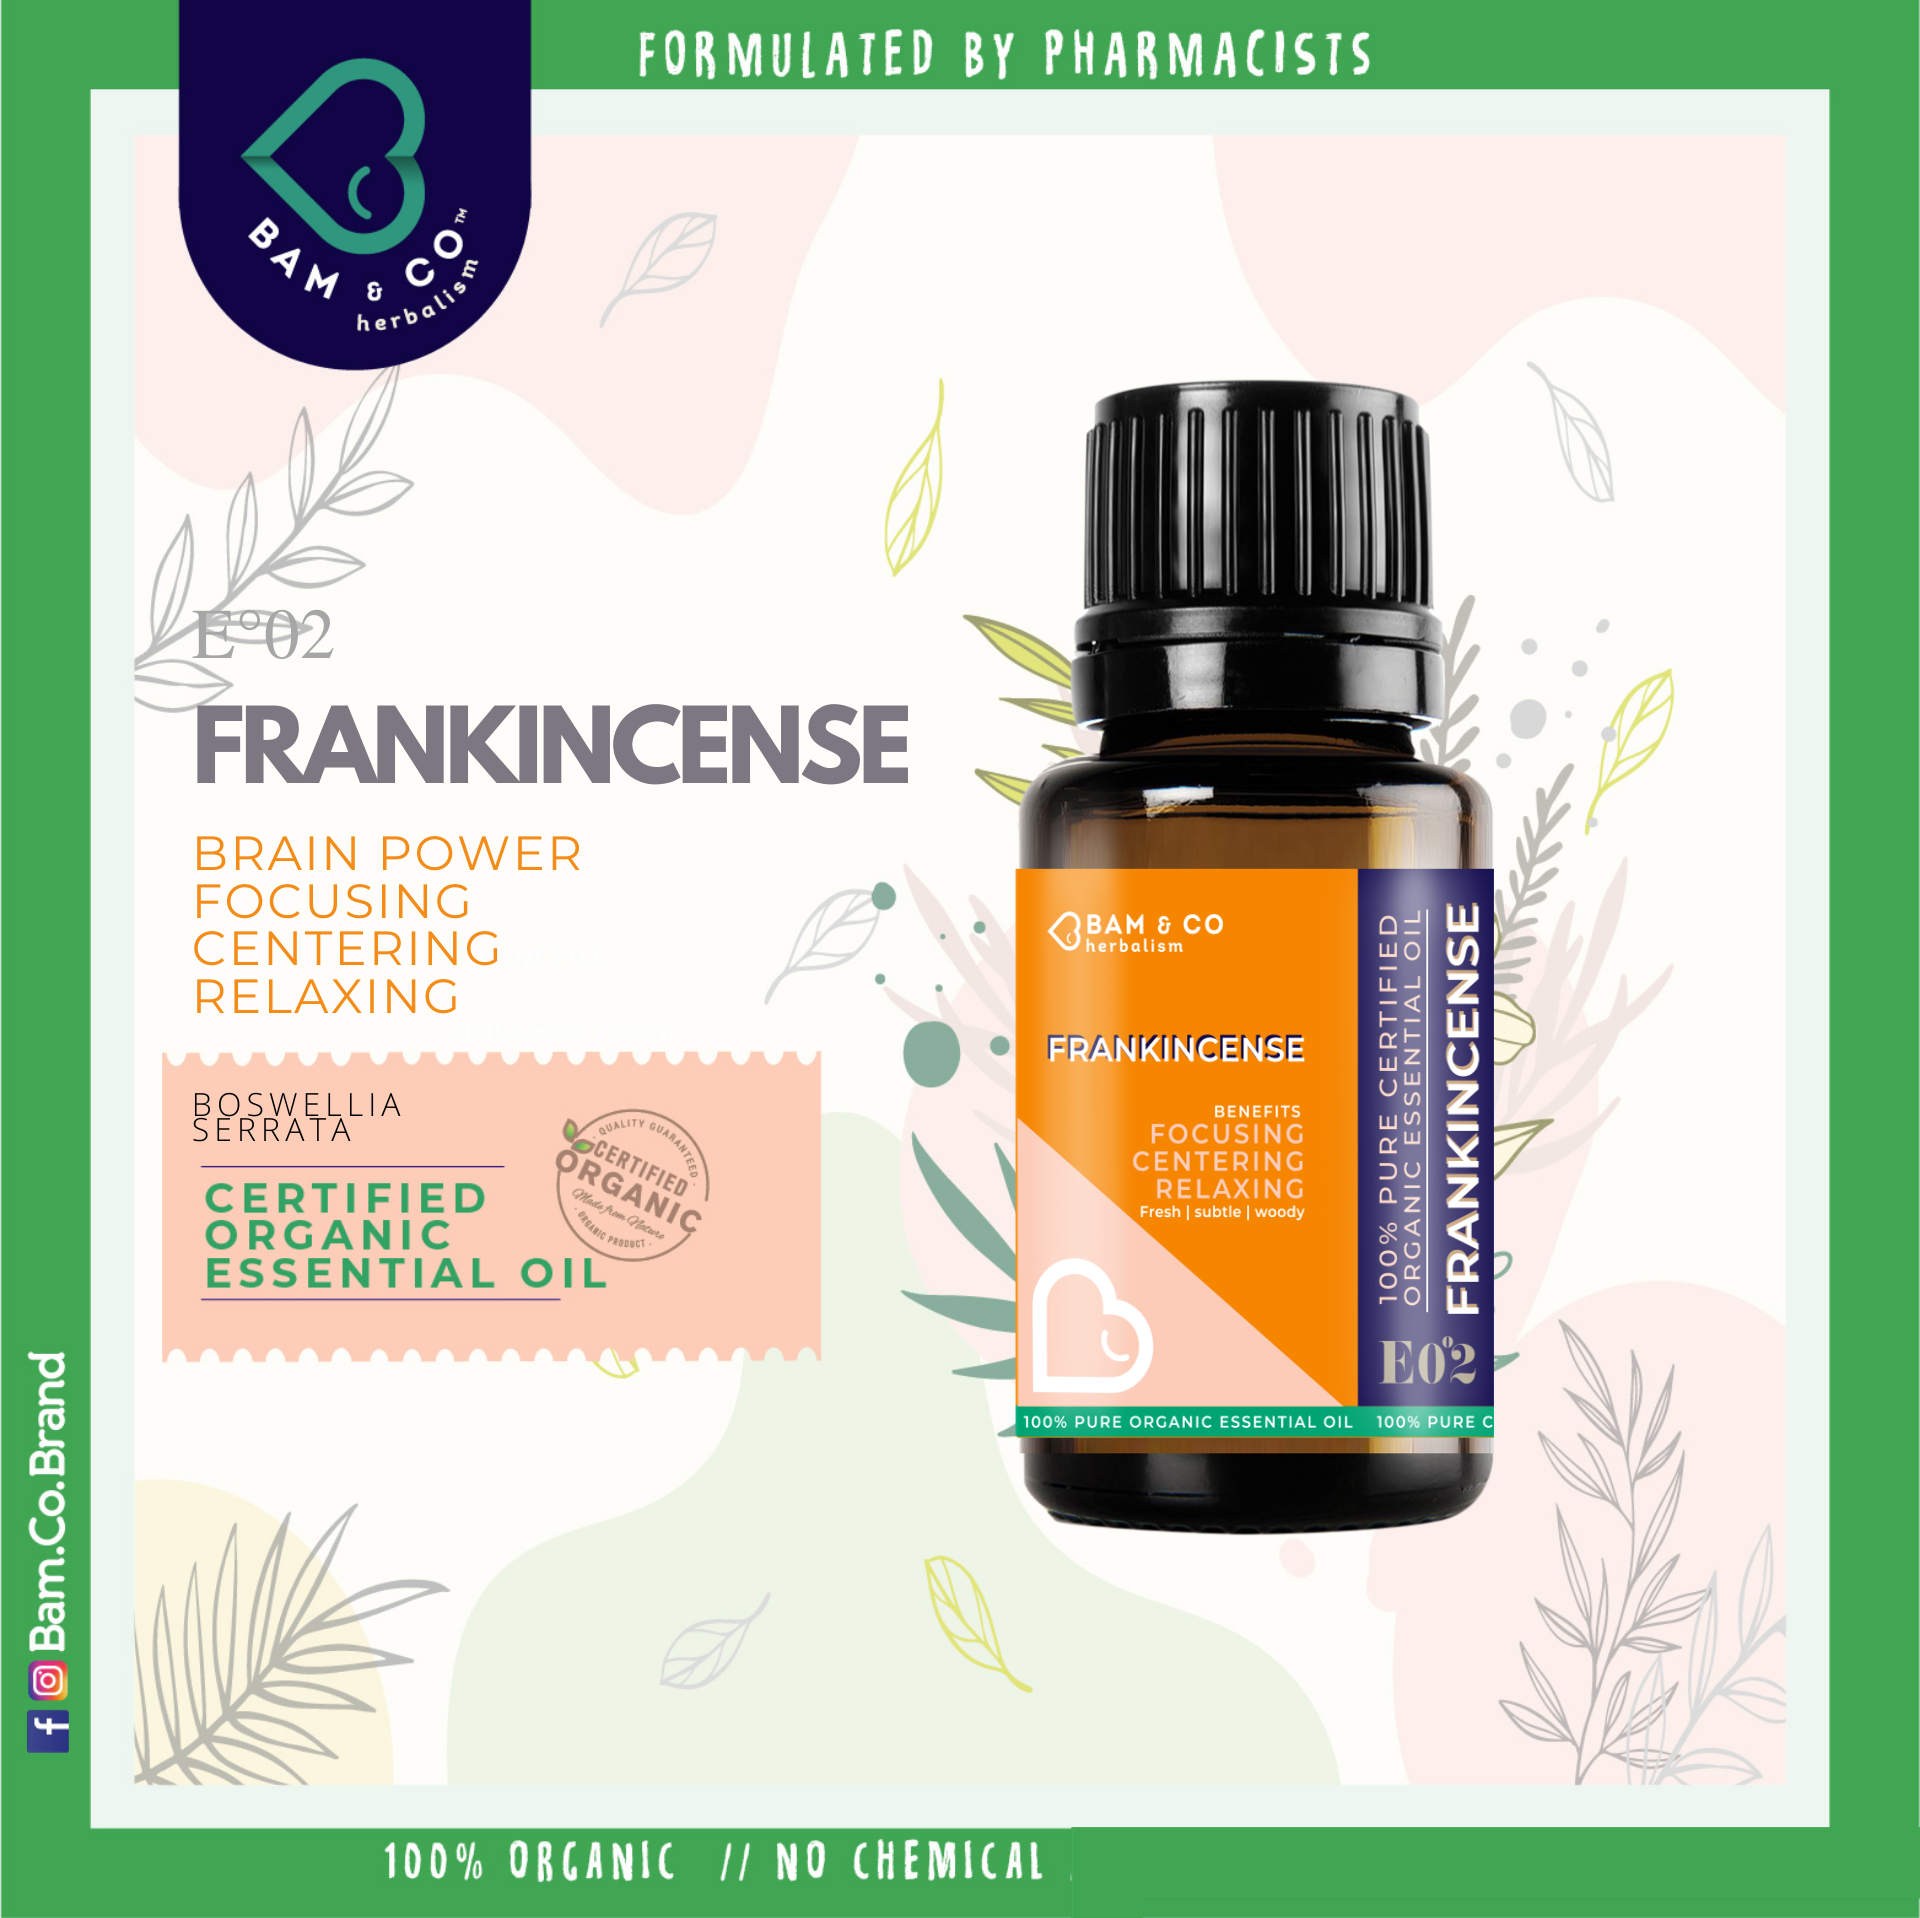 BAM & CO. FRANKINCENSE CERTIFIED PURE ORGANIC ESSENTIAL OIL PERFECT FOR HUMIDIFIER 5ML 10ML